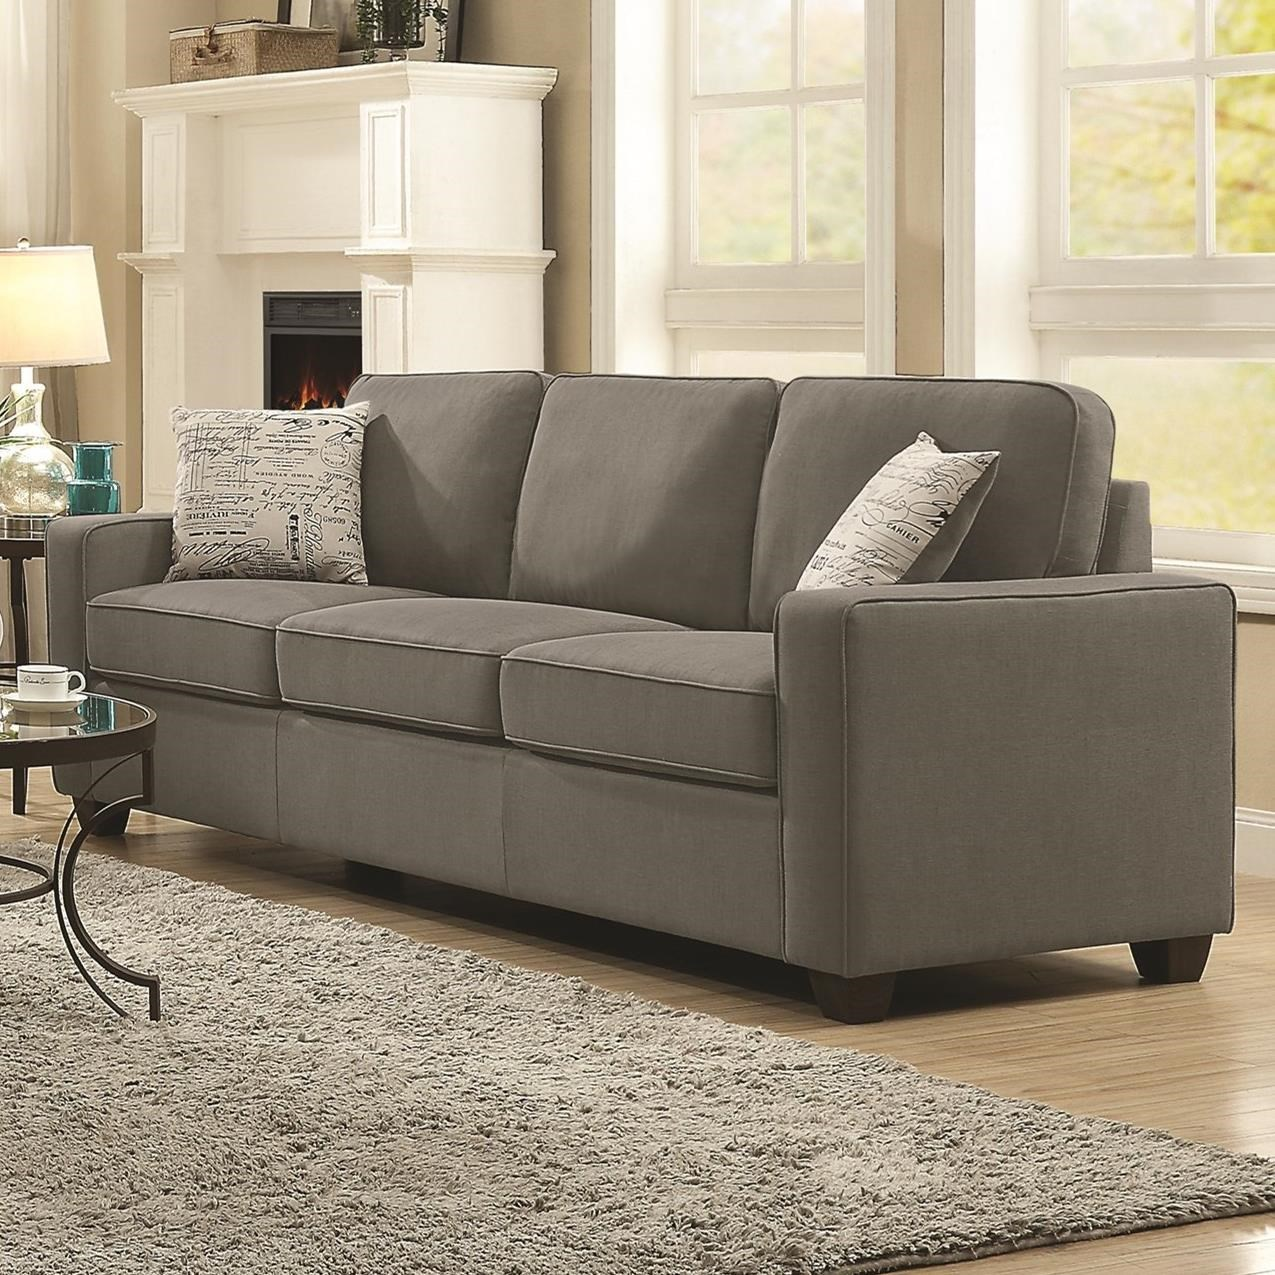 Coaster Bardem By Coaster Sofa Wth Casual Style